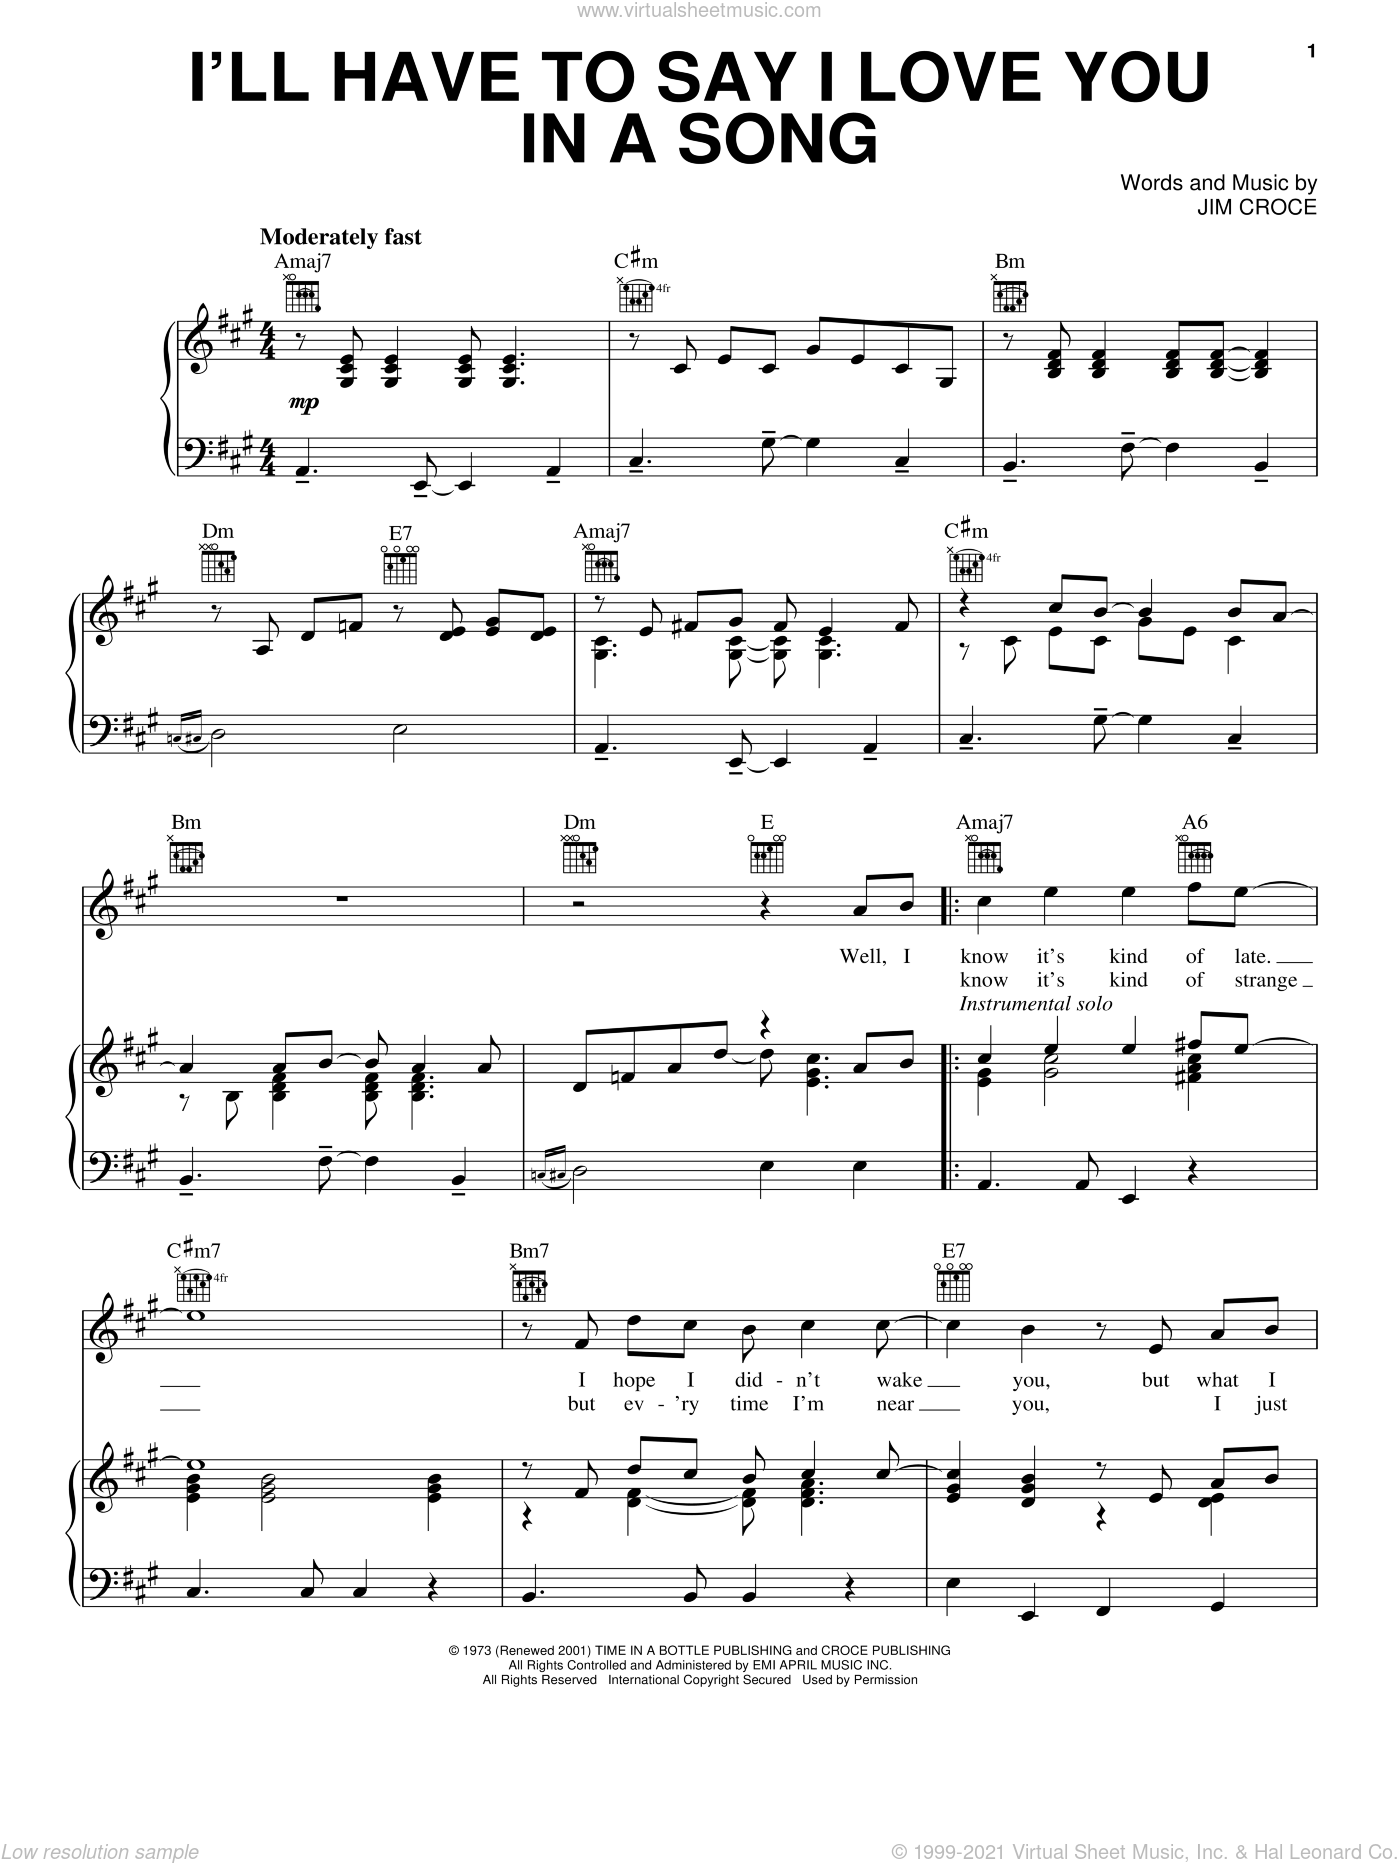 I'll Have To Say I Love You In A Song sheet music for voice, piano or guitar by Jim Croce, wedding score, intermediate skill level